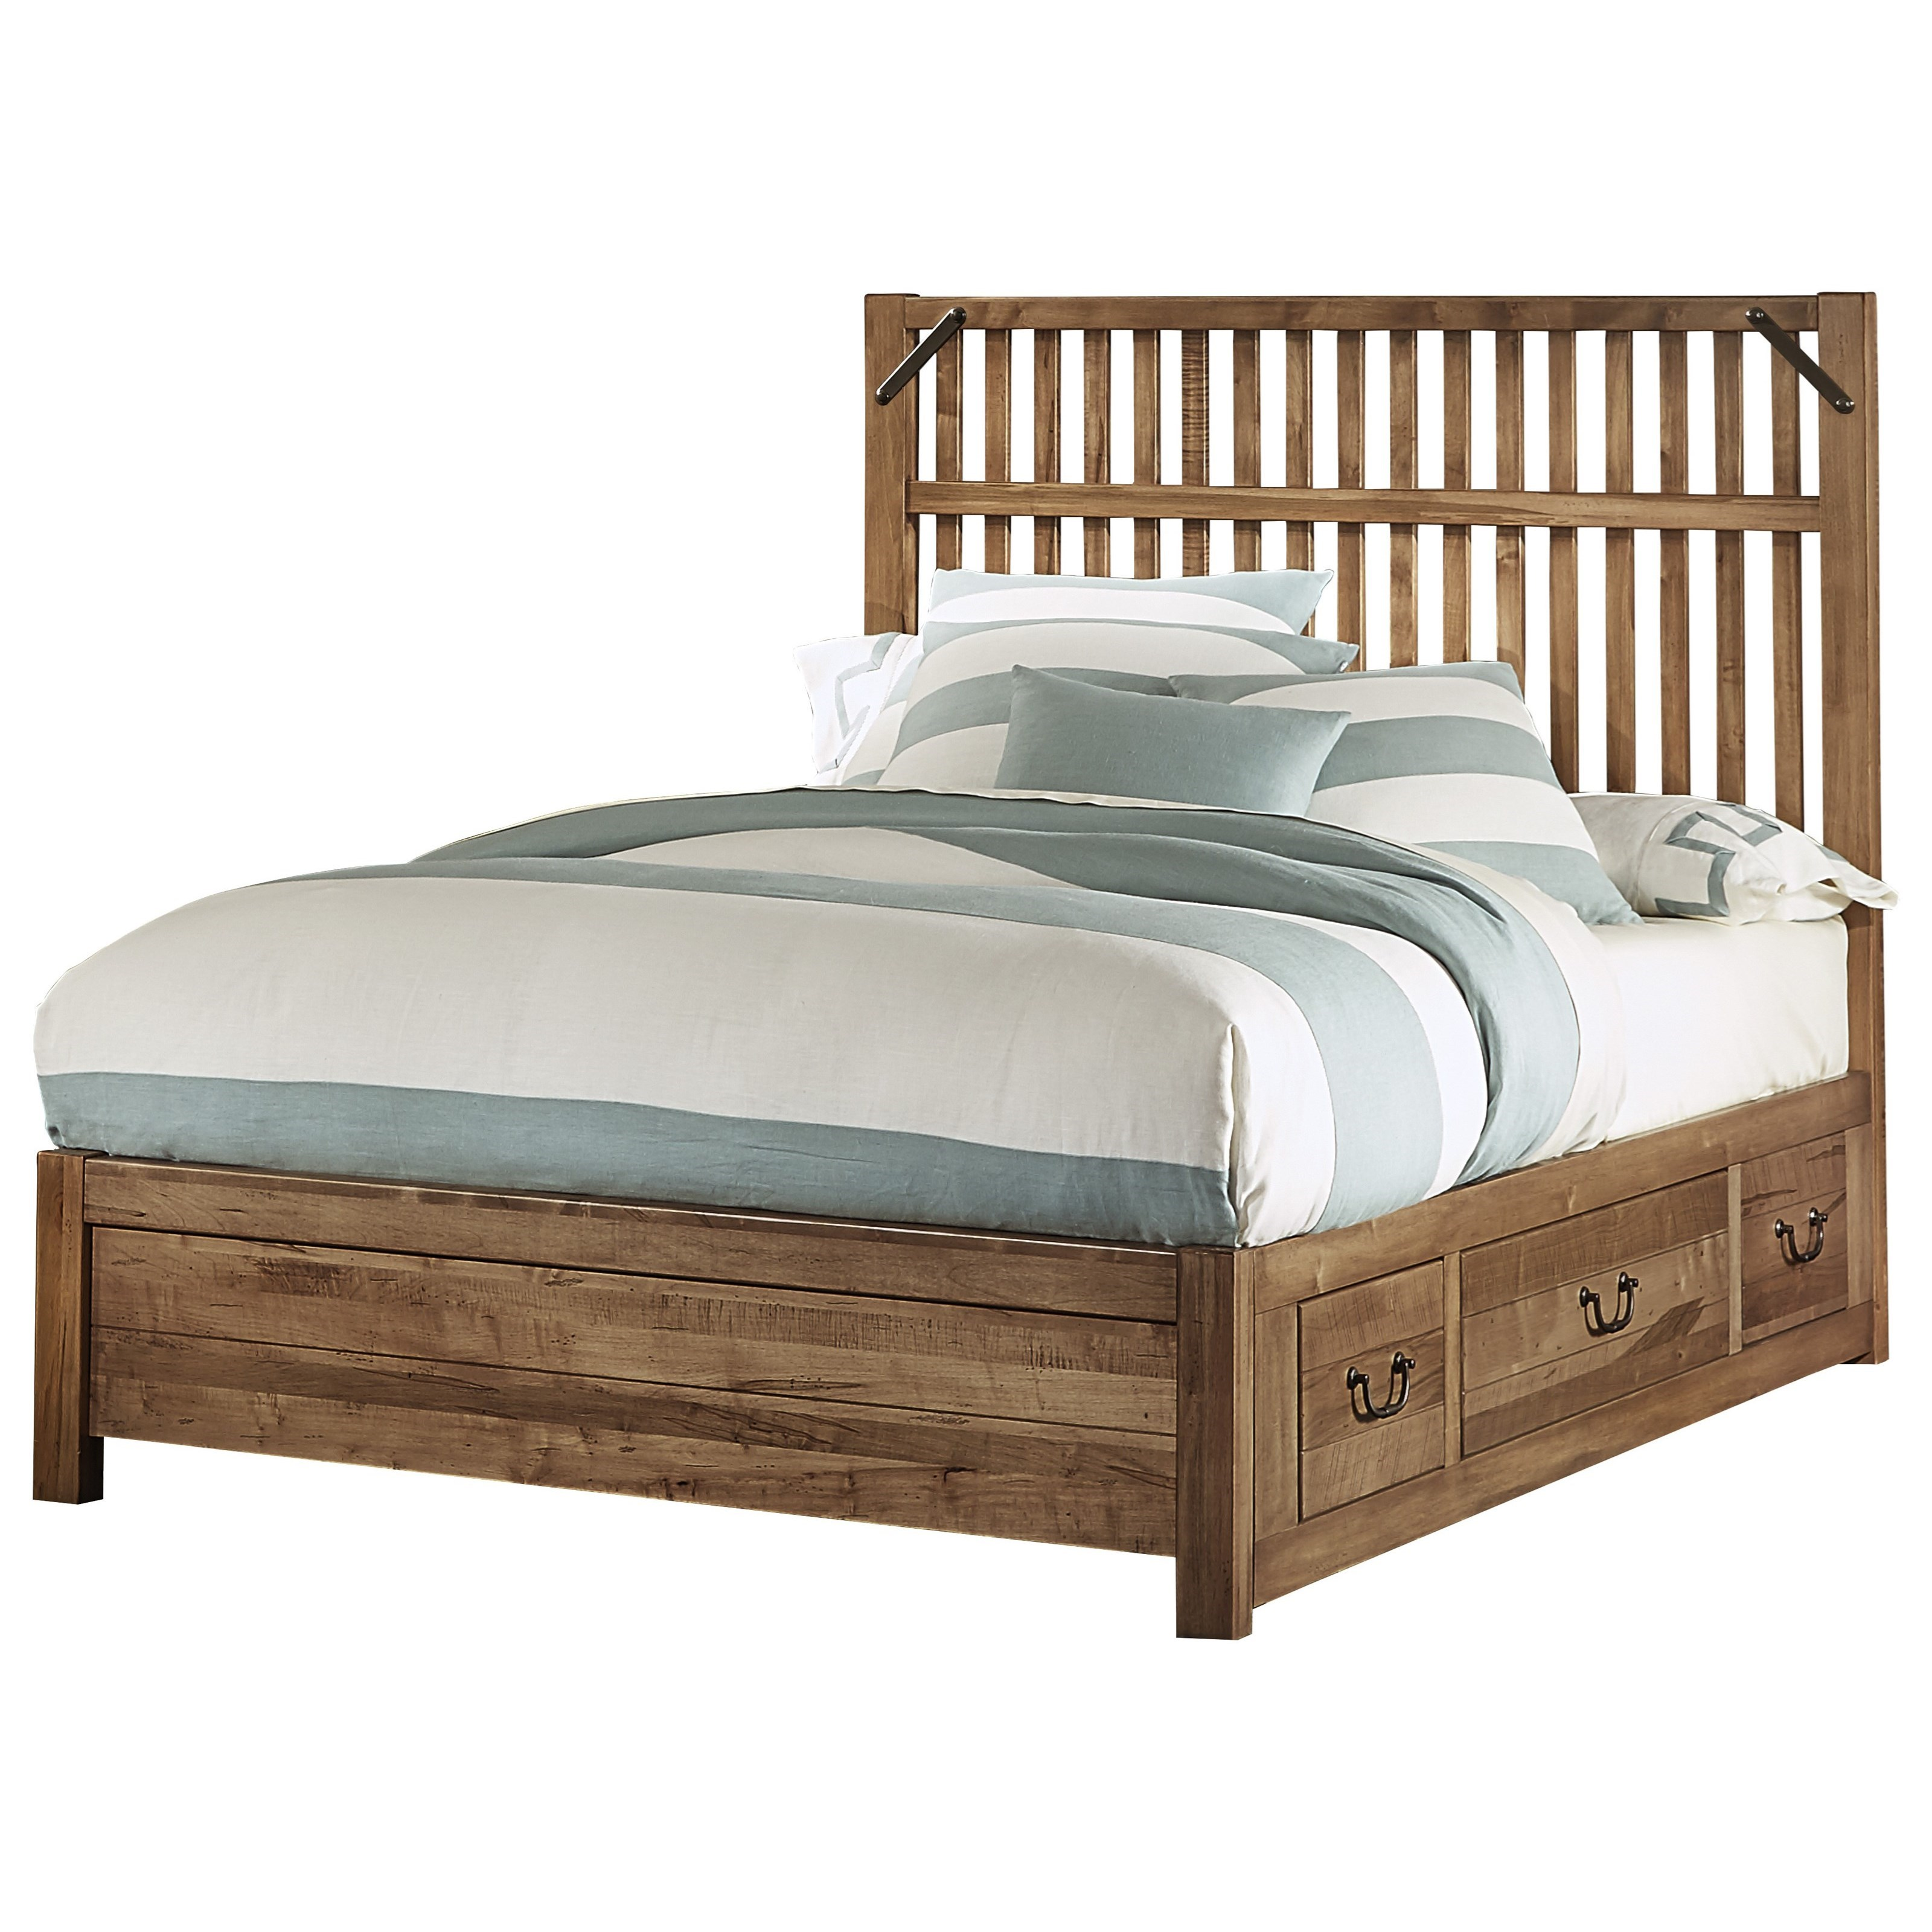 Queen Bed with Storage